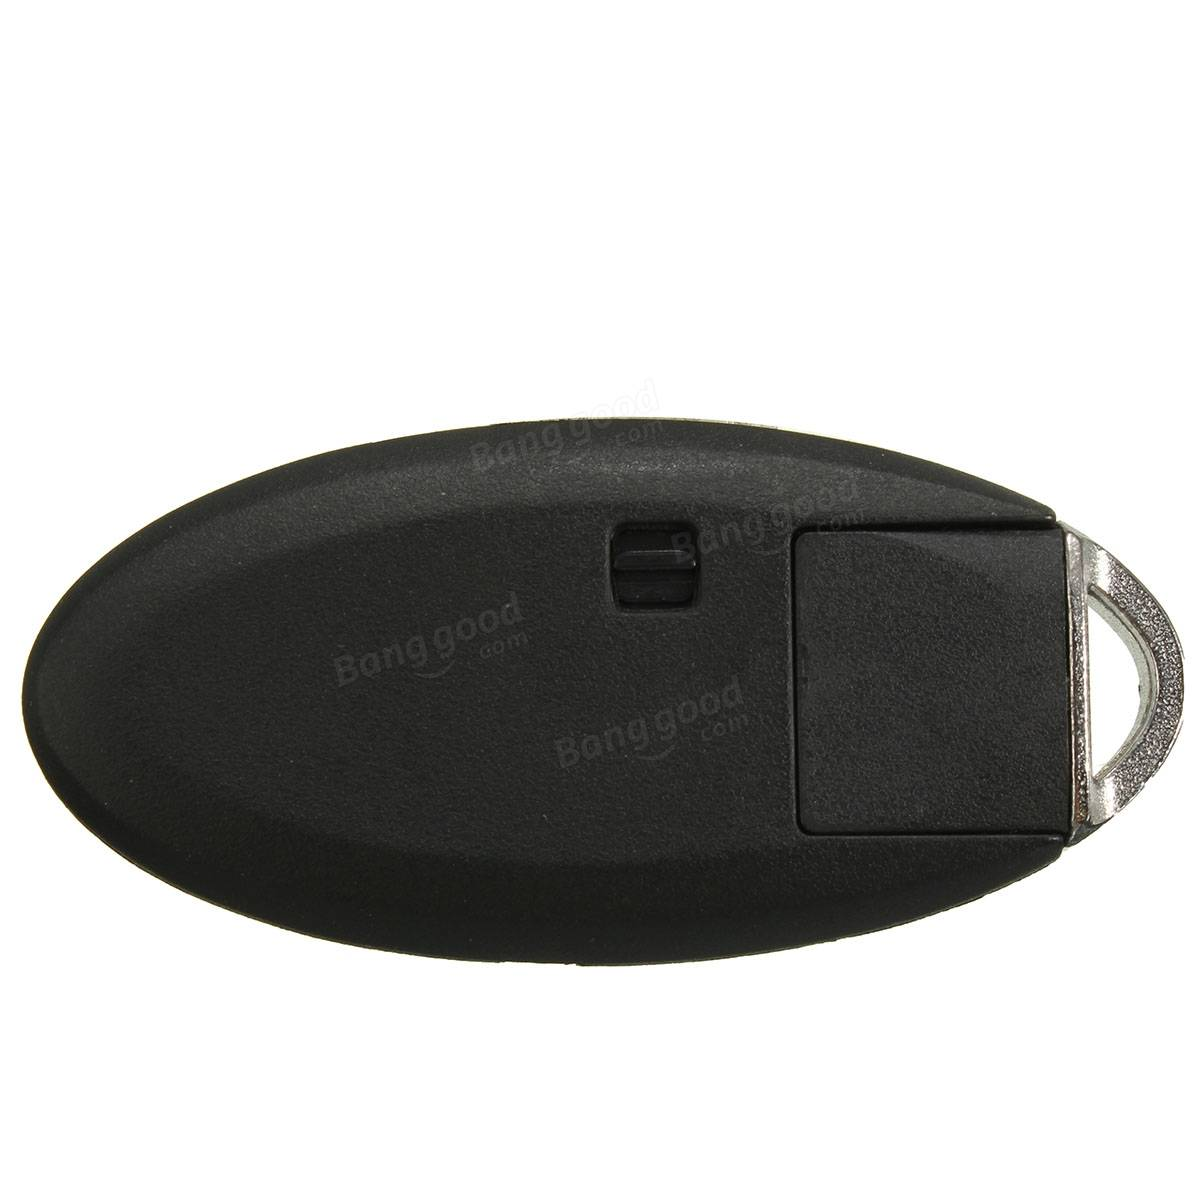 3 Button Uncut Keyless Entry Remote Key Case For Nissan